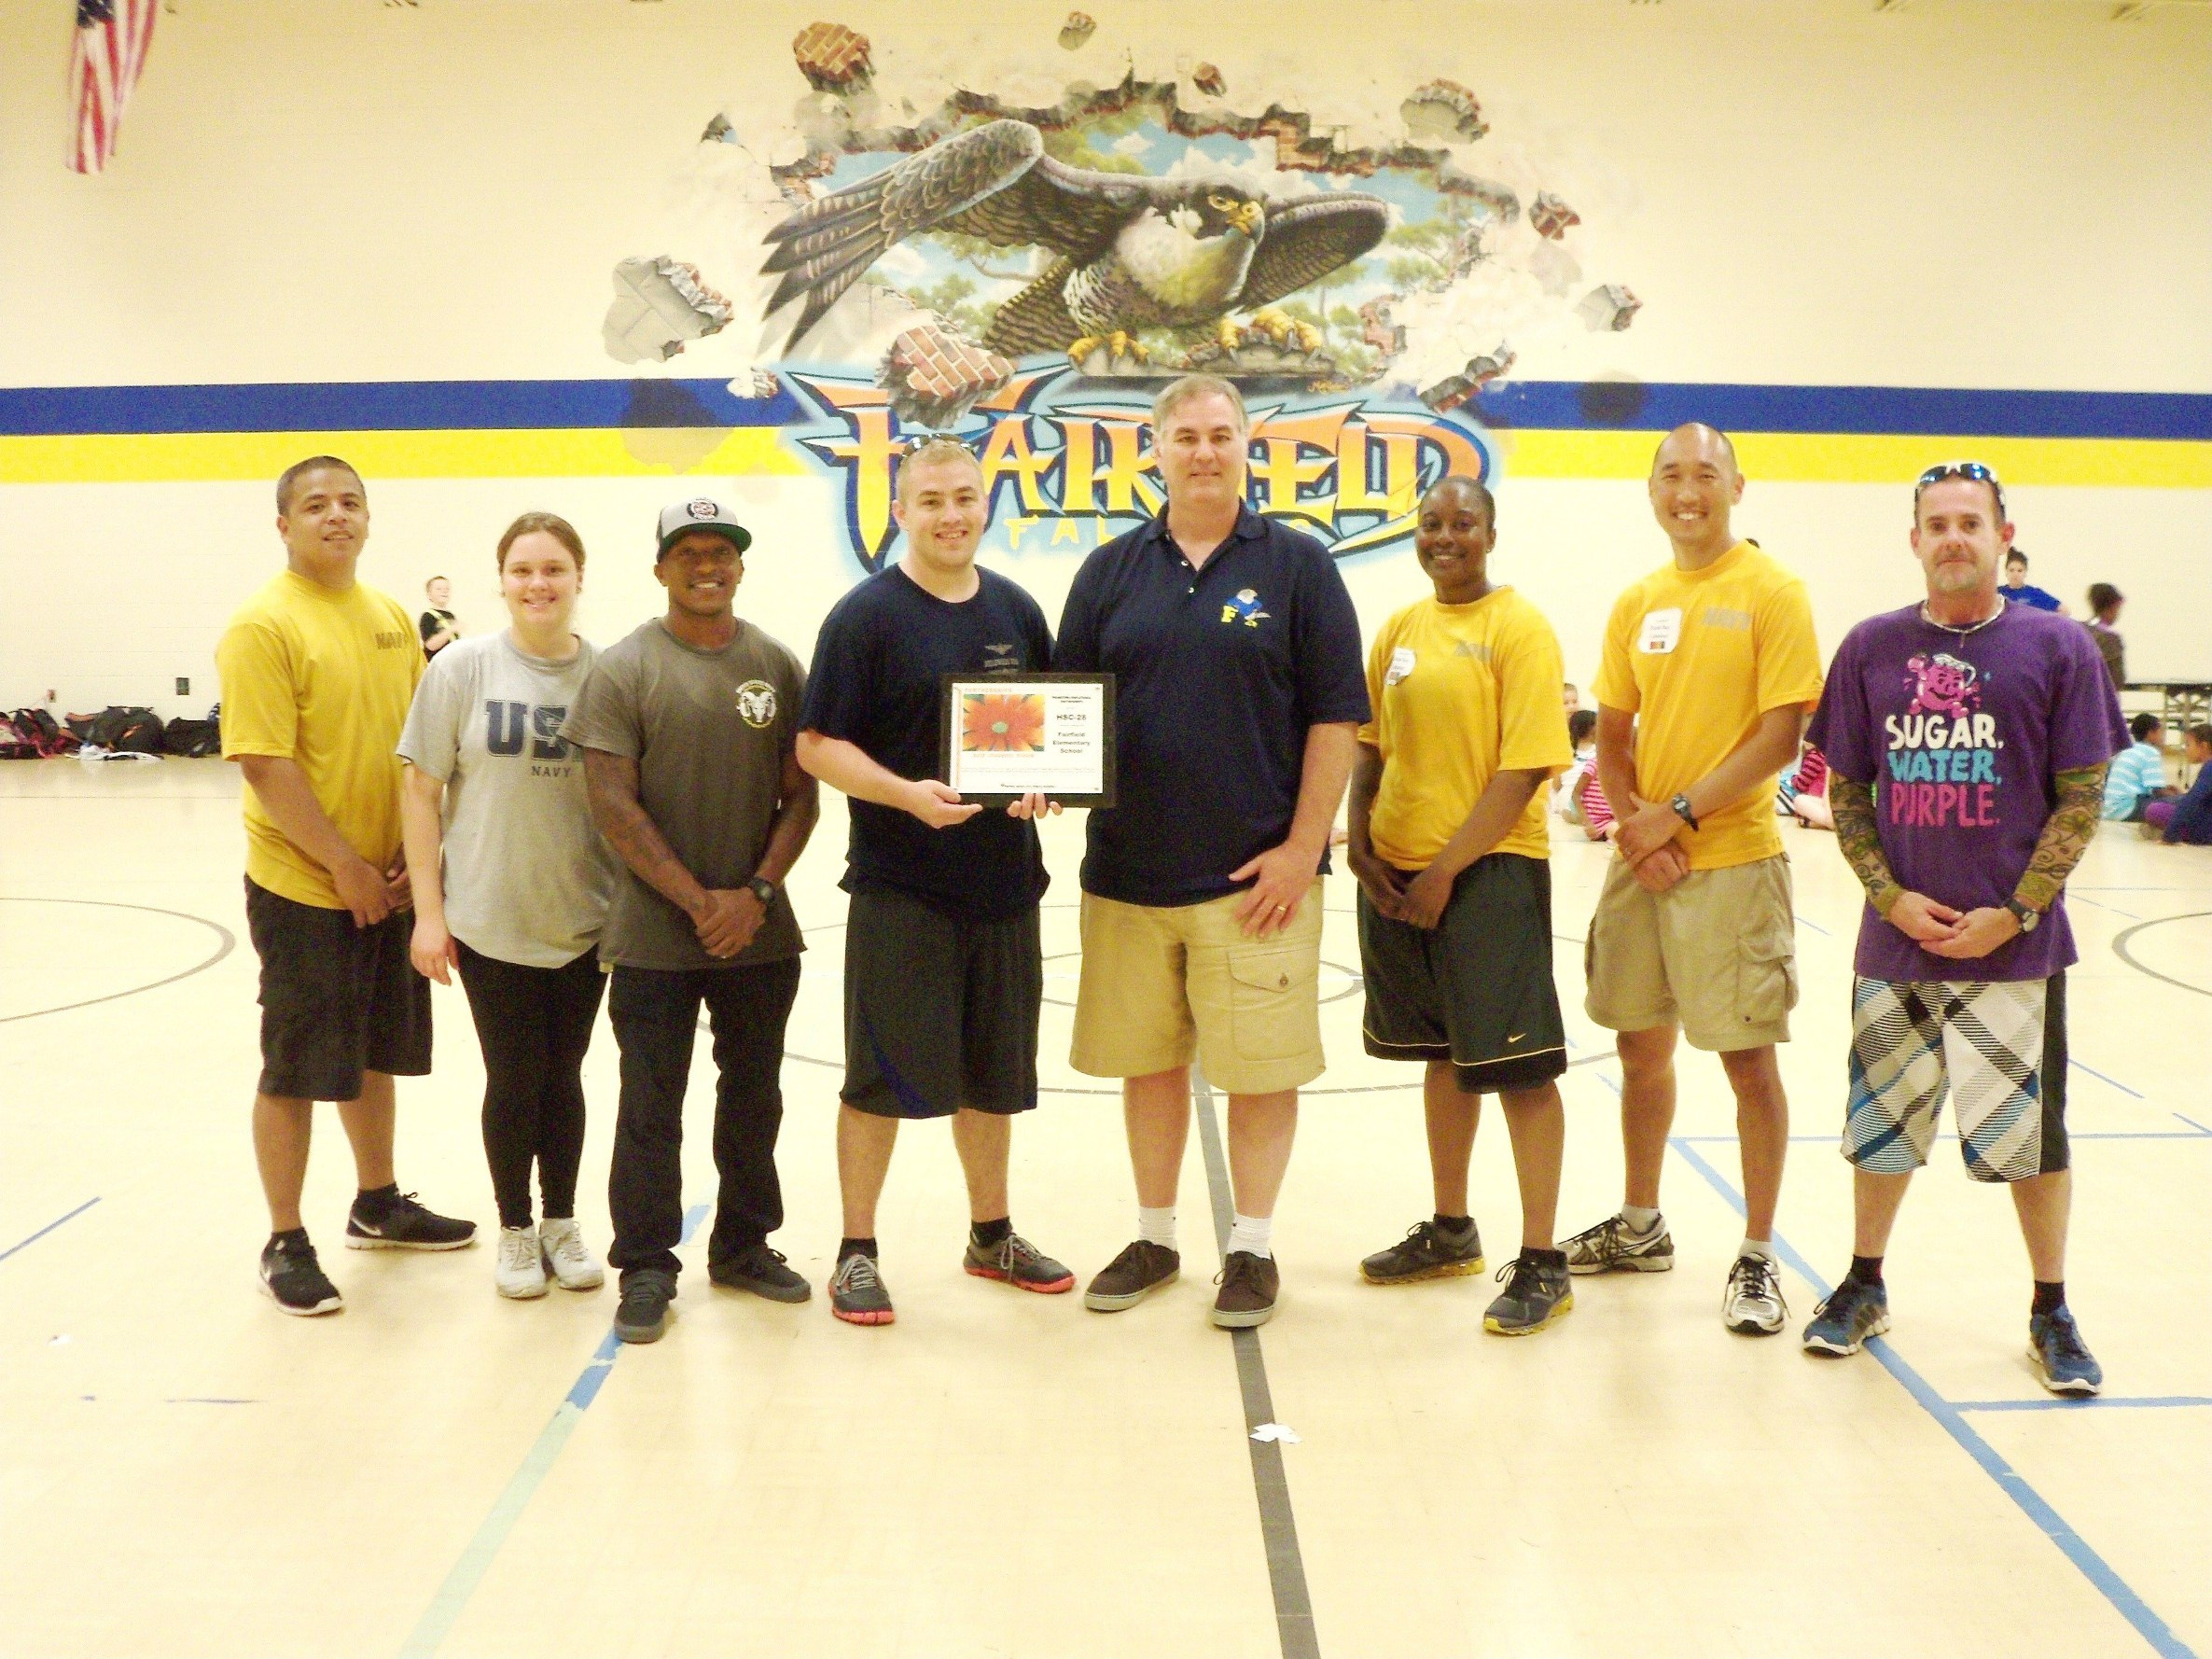 Members of the Navy team with principal Mr. Knapp (center), and PE teacher, Dave Matney (far right).